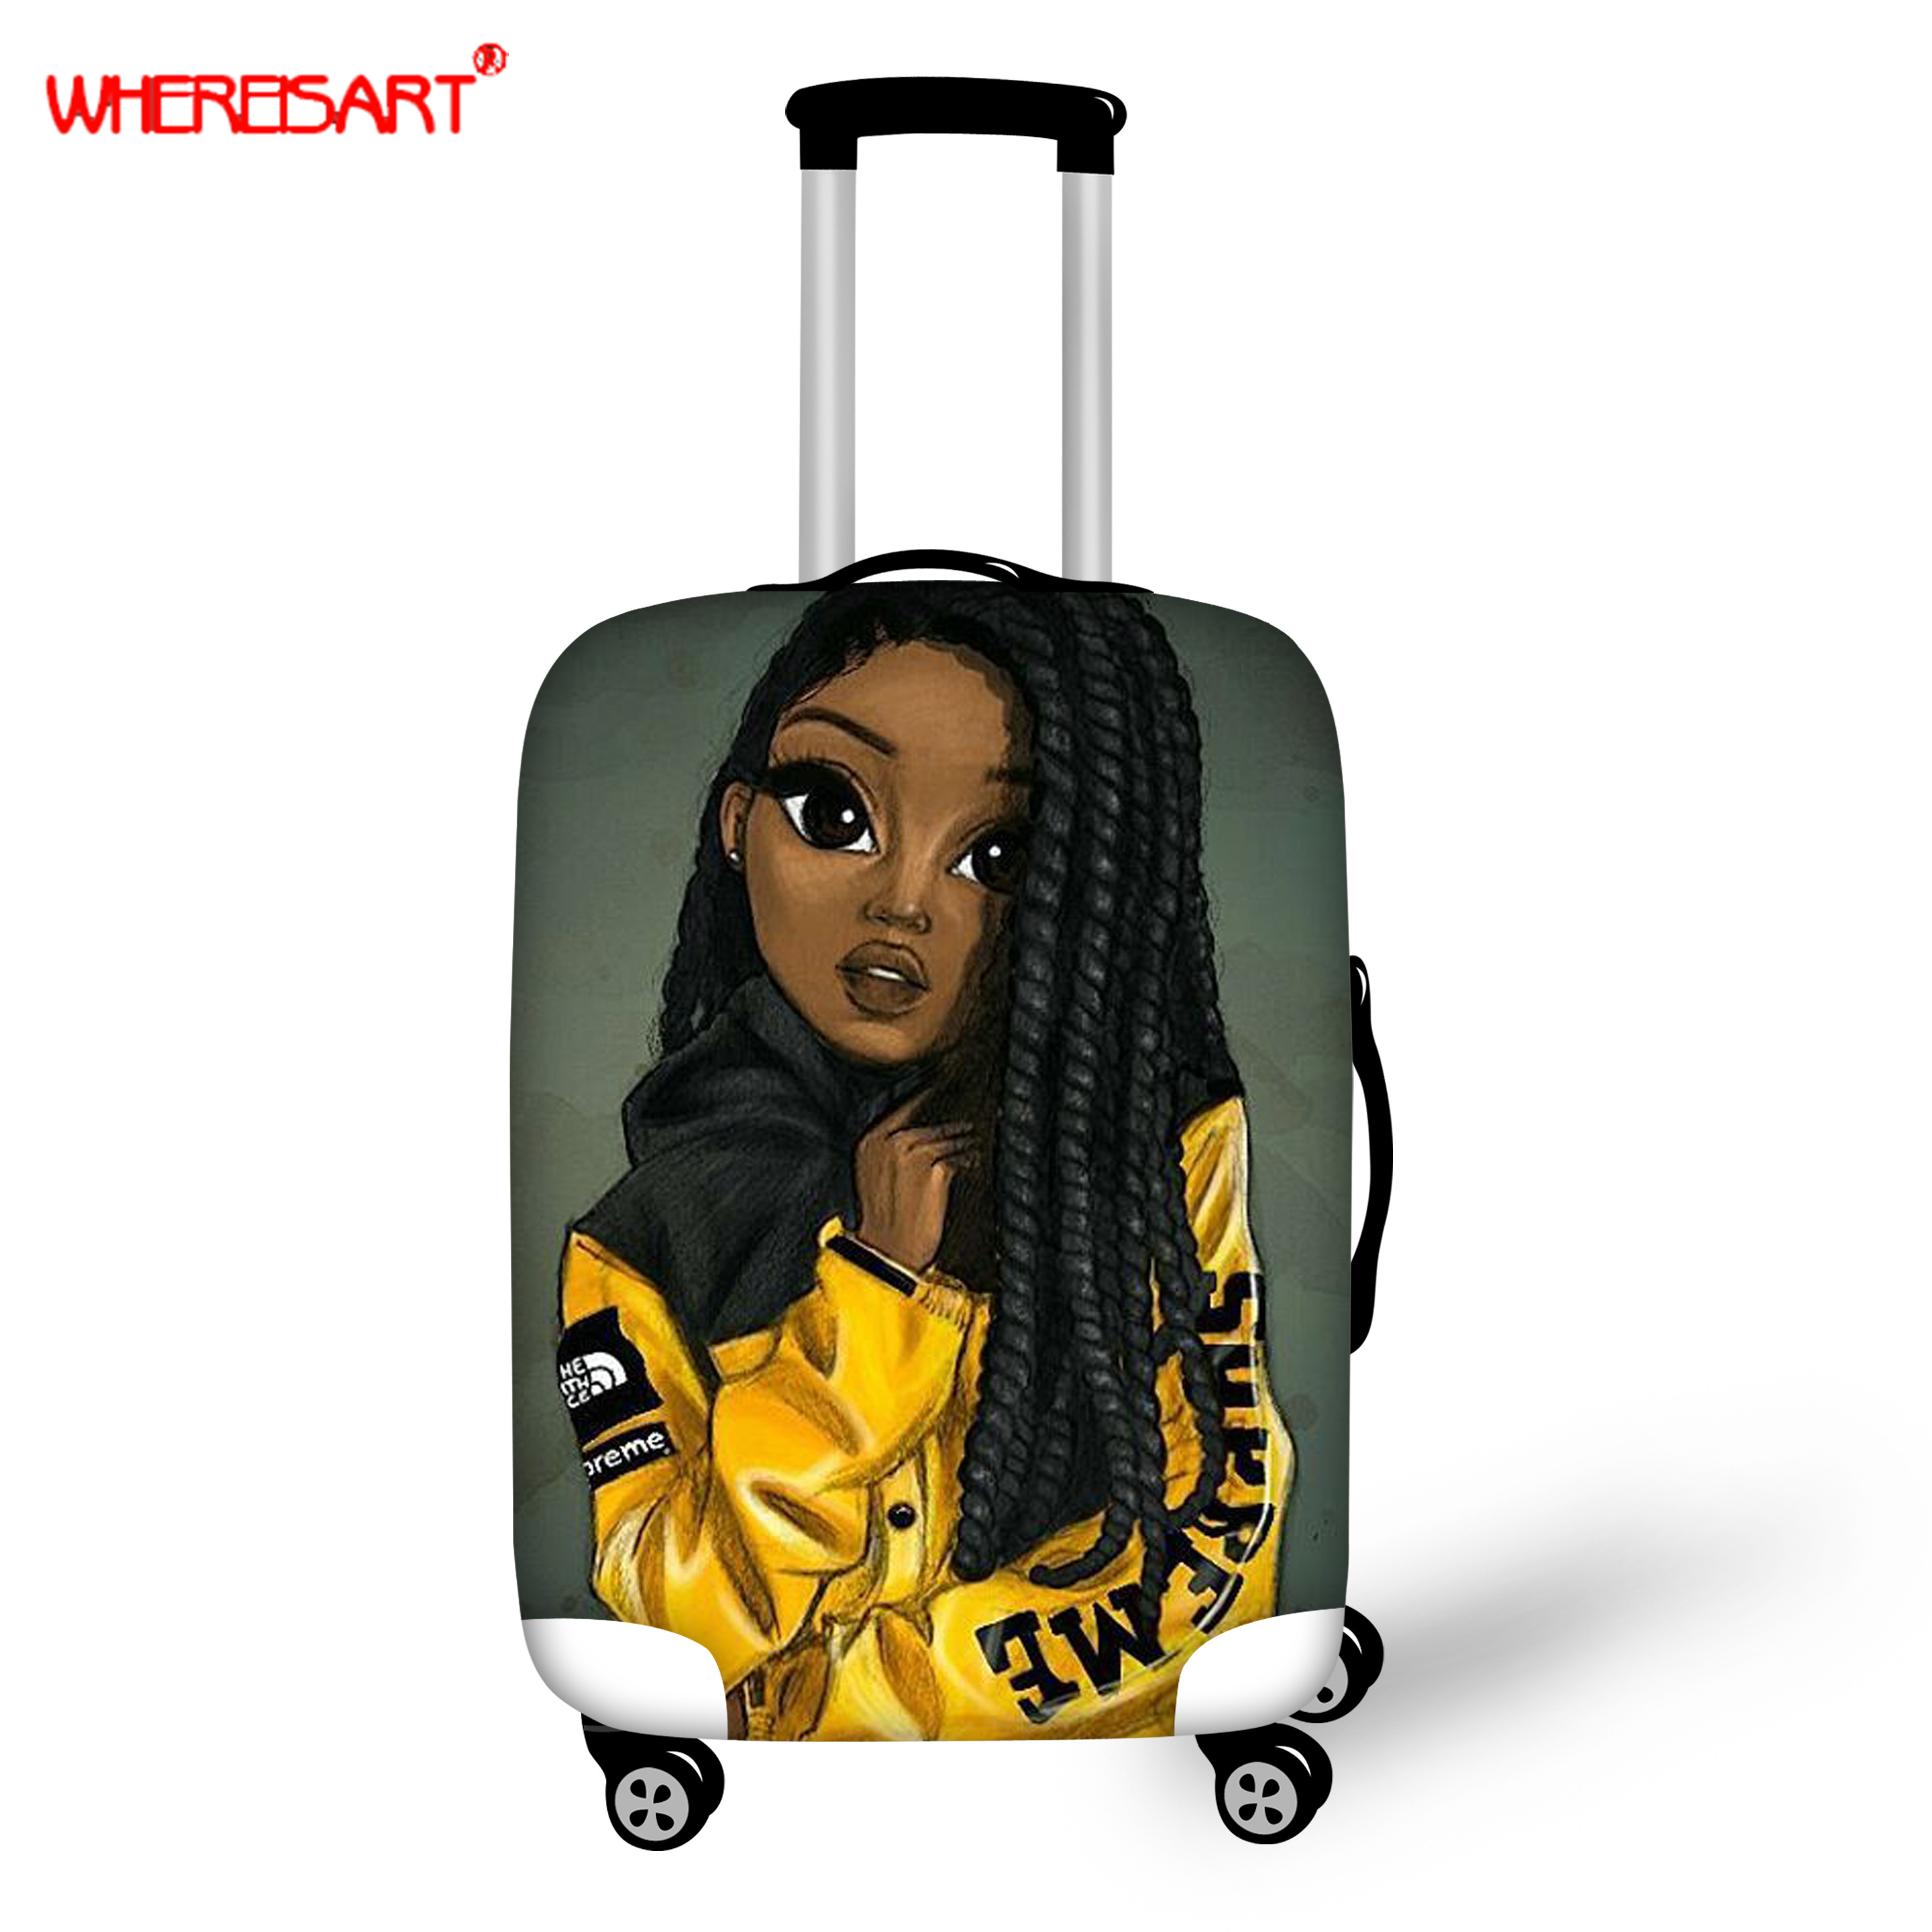 WHEREISART Accessories Protective-Cover Luggage Trolley Travel-Case Rain-Bags Women's